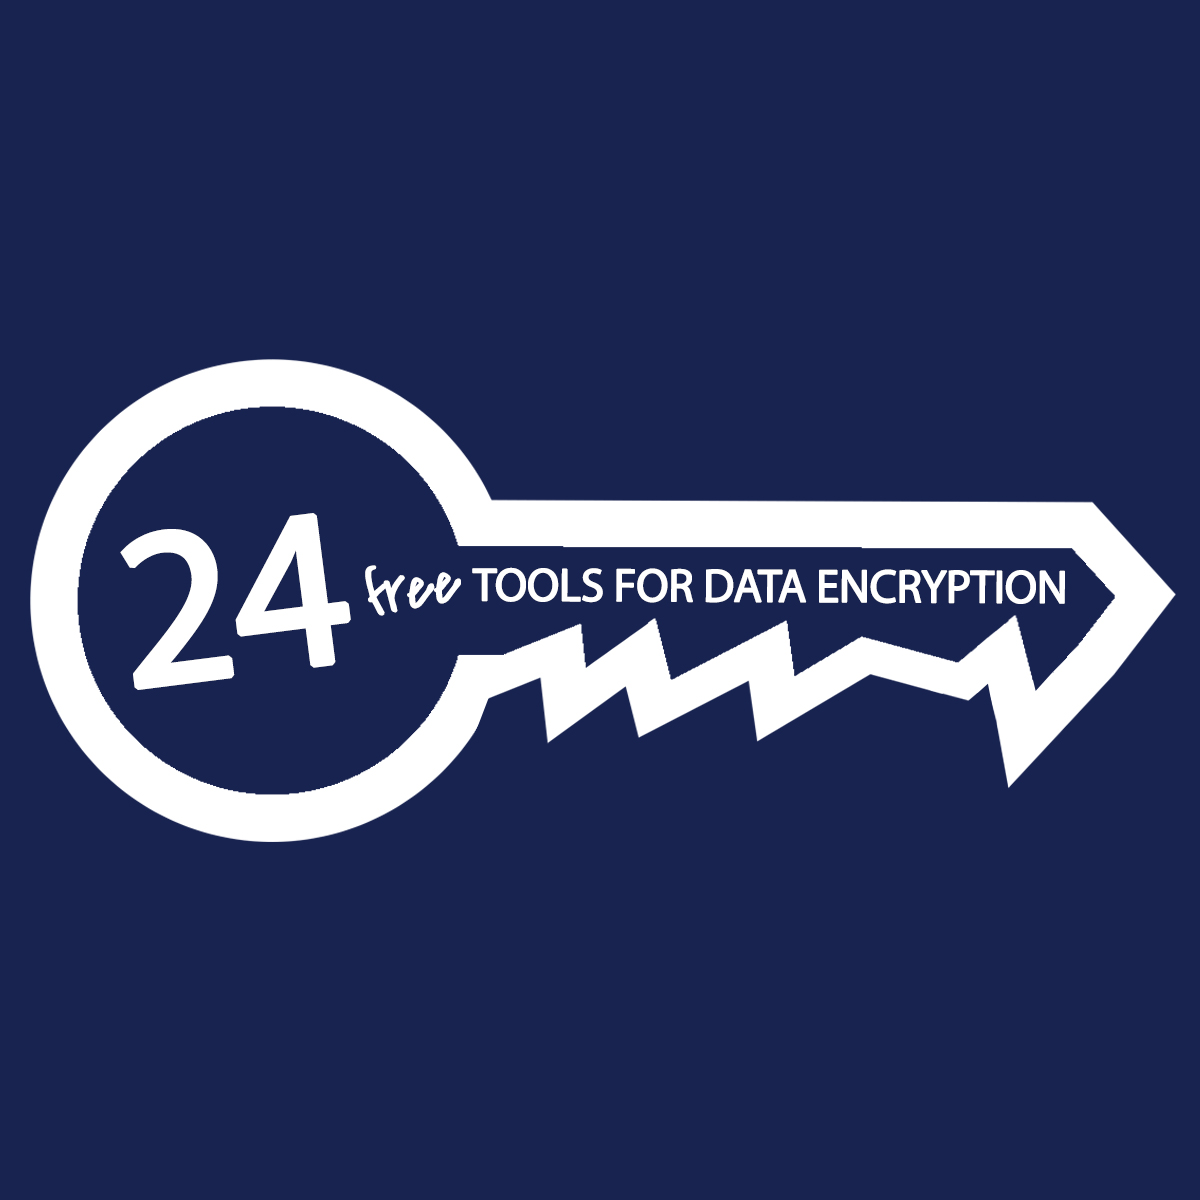 The Top 24 Free Tools For Data Encryption